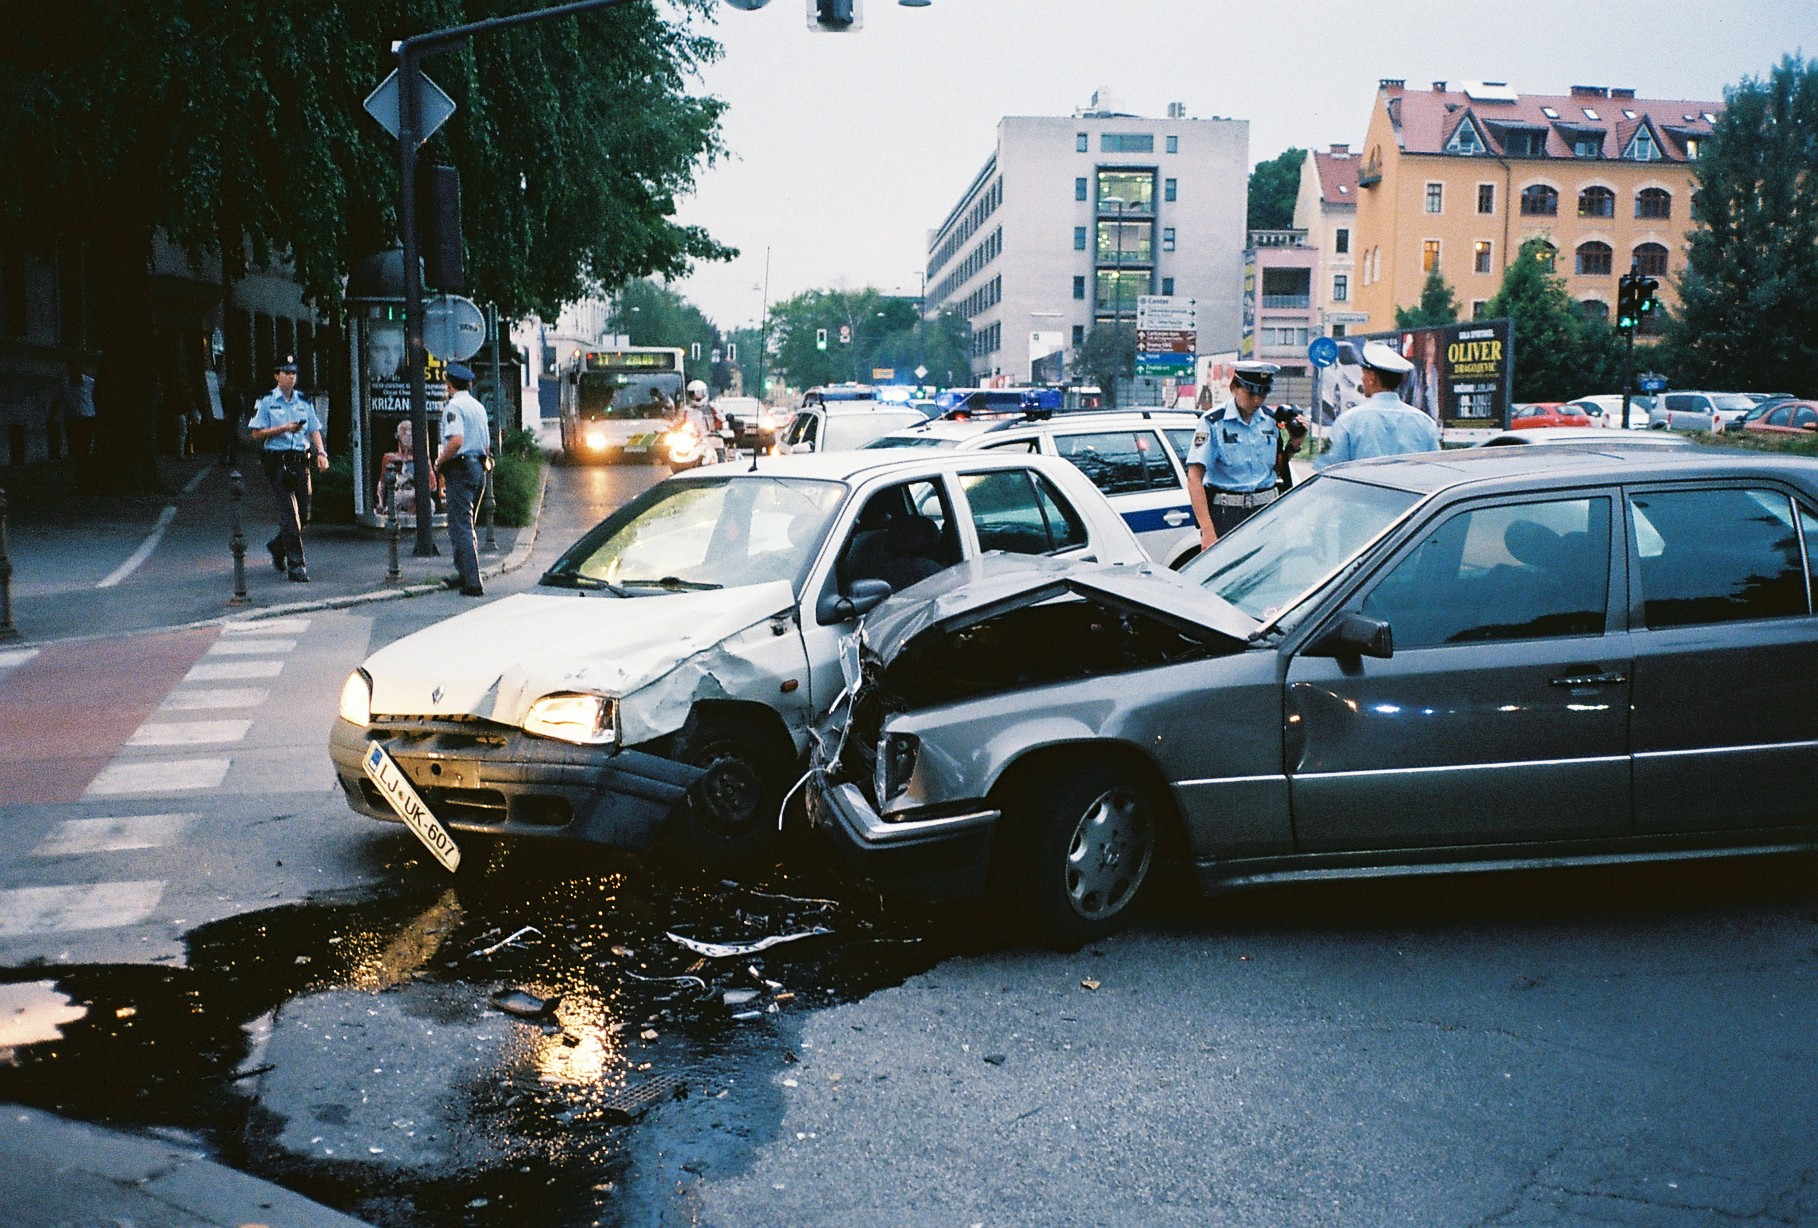 Ljubljana_car_crash_2013